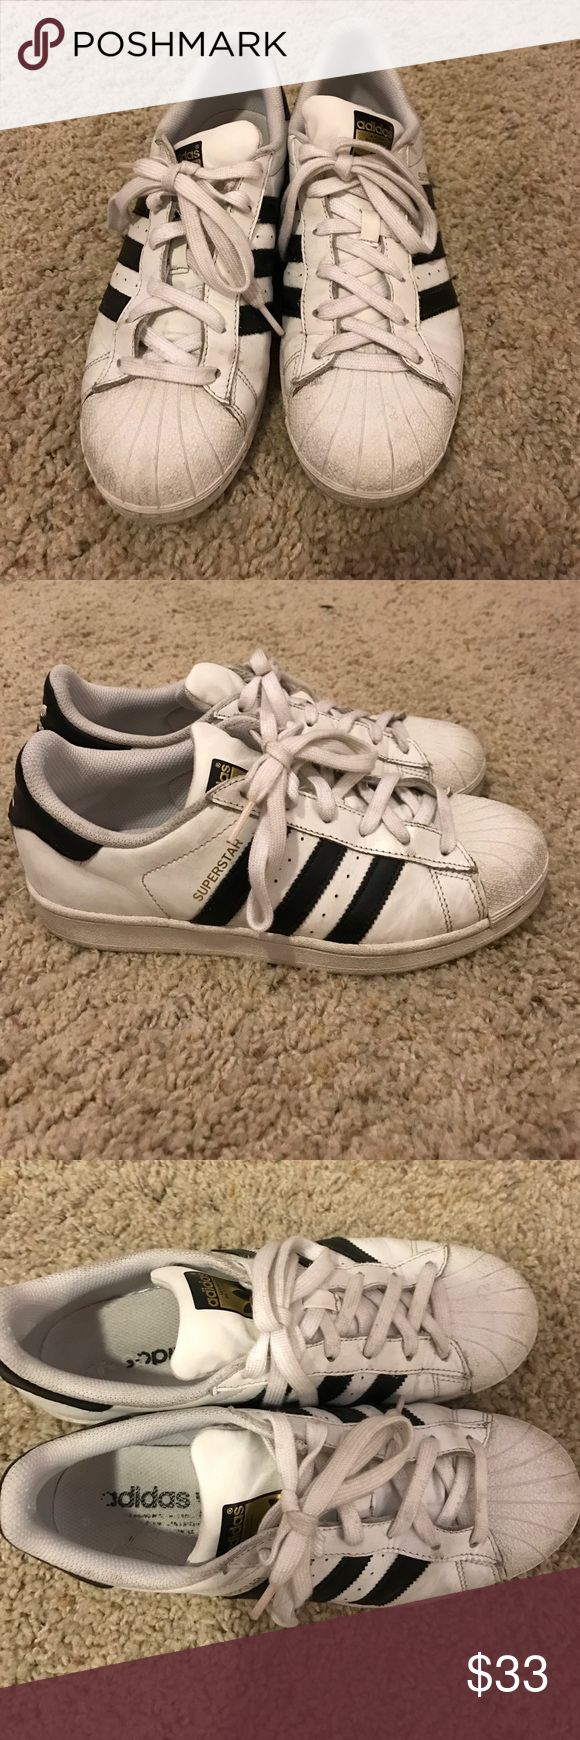 Adidas Superstar Worn. Few dirt stains. Pretty clean toe box area. Please let me know if you have questions size 8 but run about a whole size big Adidas Shoes Sneakers